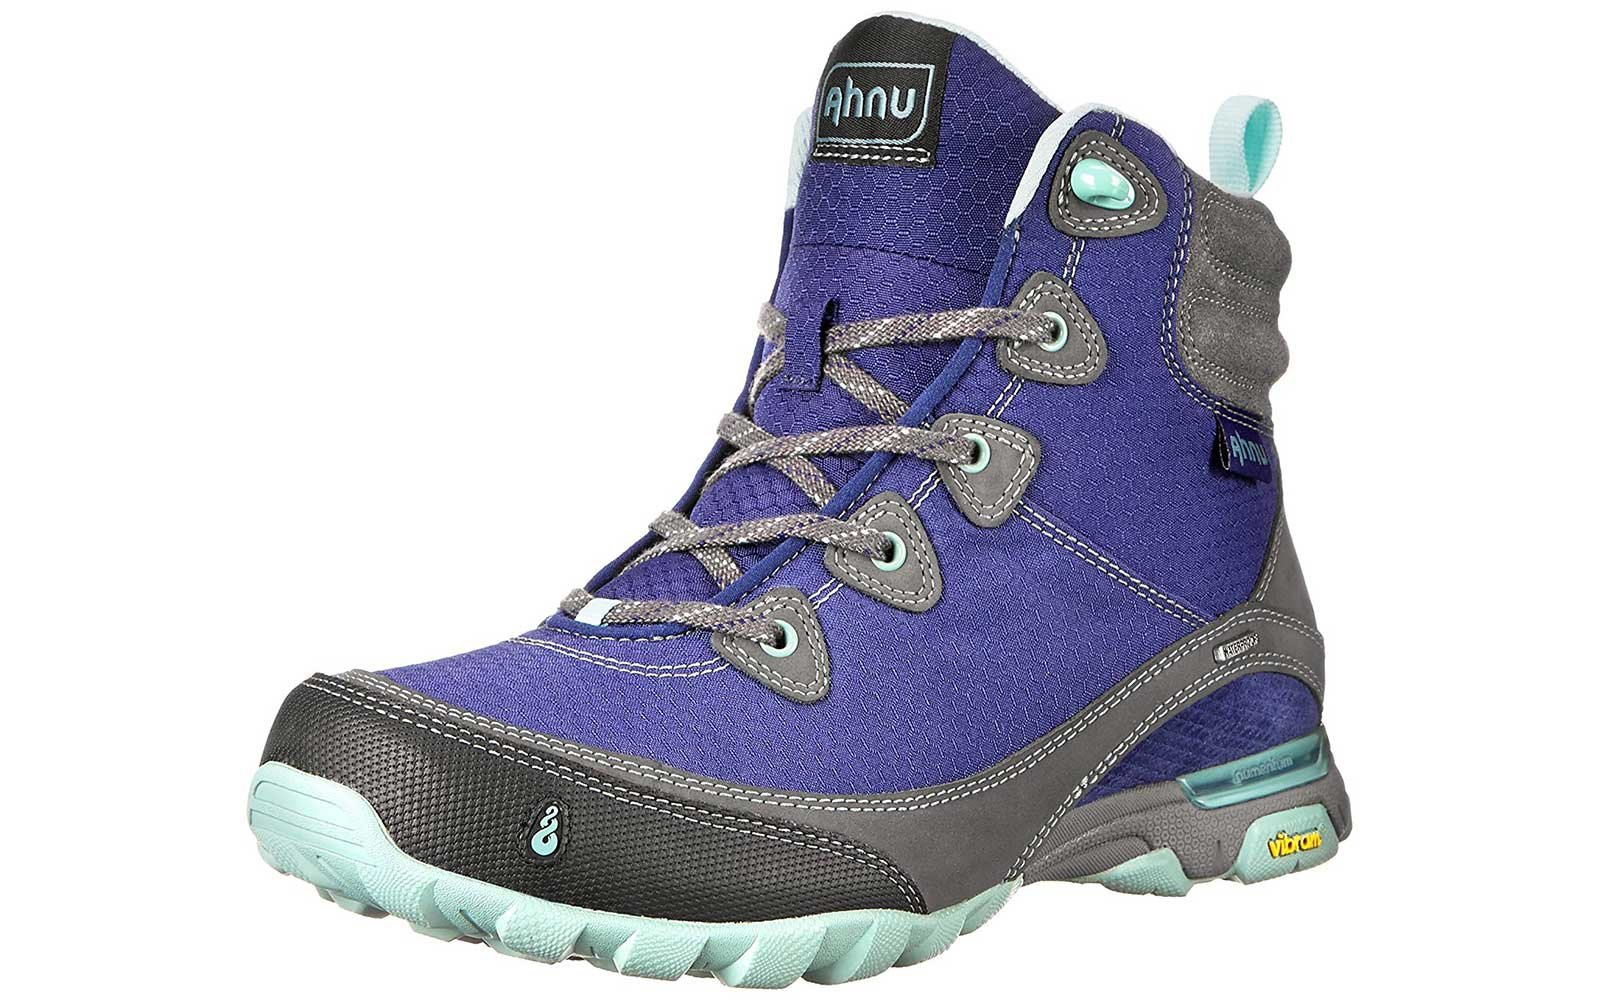 261c842afa1a The 10 Best Hiking Shoes on Amazon